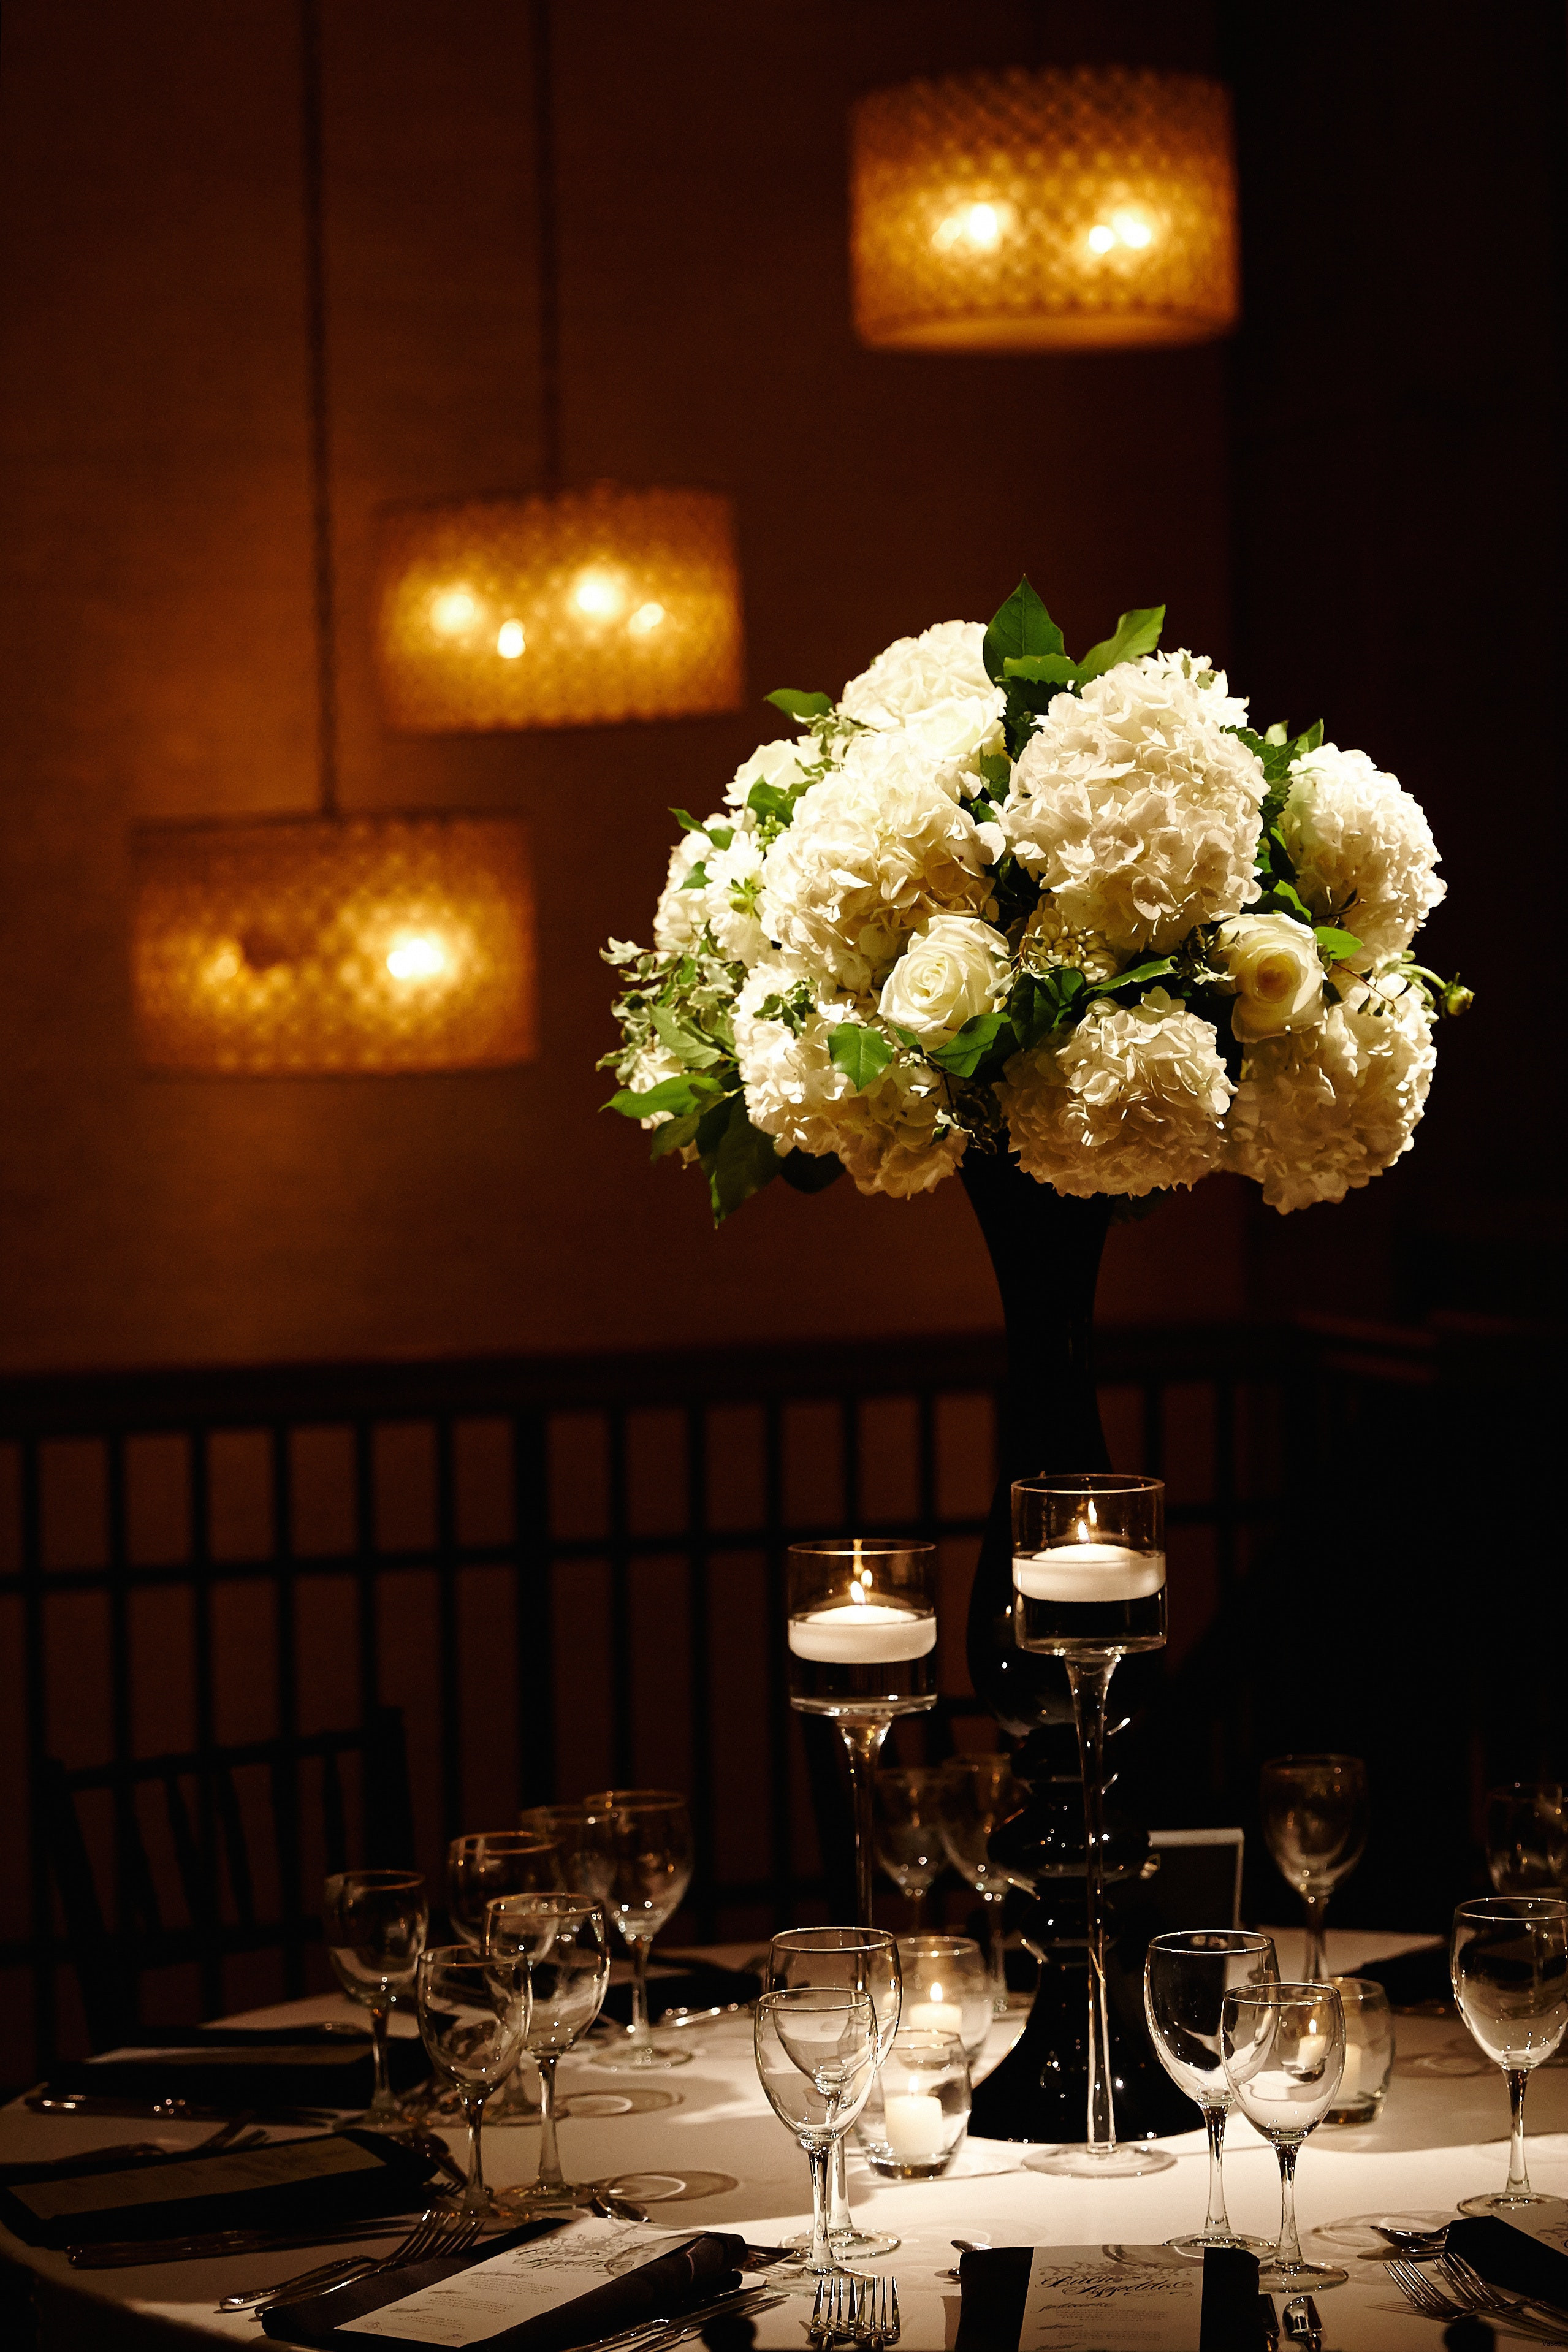 Tall Vase with Sticks Of Tall Vase Arrangements Photos Il Fullxfull H Vases Black Vase White within Tall Vase Arrangements Photos Il Fullxfull H Vases Black Vase White Flowers Zoomi 0d with Design